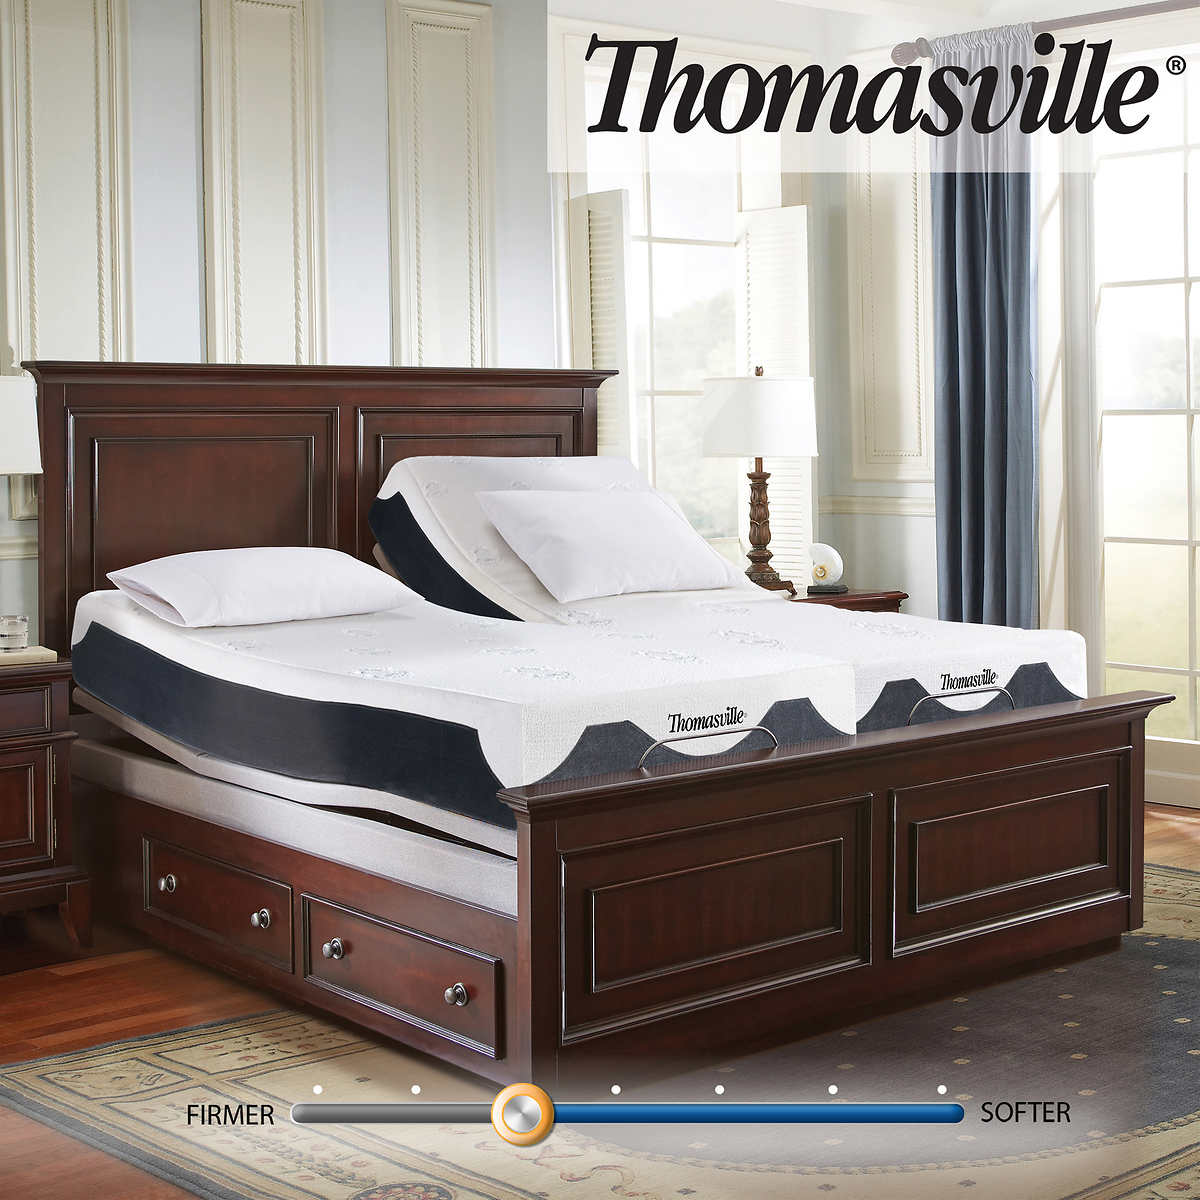 Thomasville 12 Elite Iii Latex Hybrid Split King Mattress With